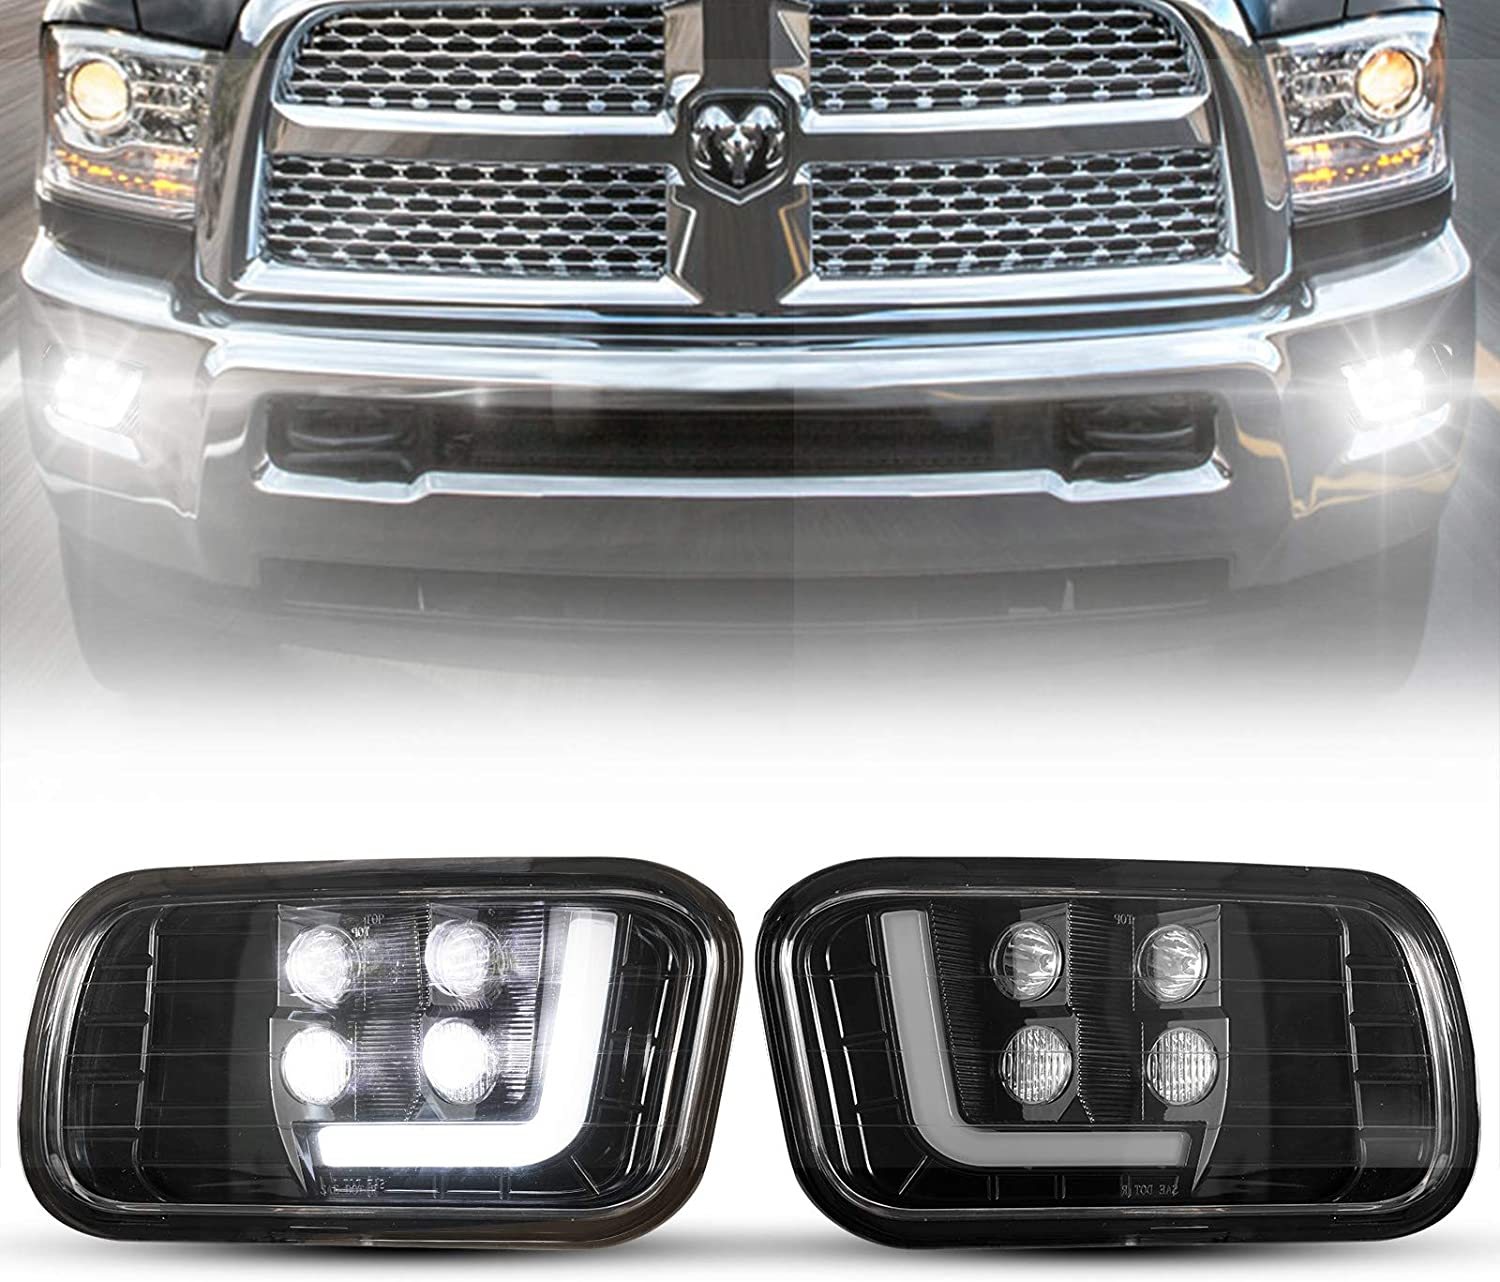 BUNKER INDUST Dodge Ram LED Fog Lights with Daytime Running Lights Set,1 Pair Clear Lens Spot Flood Driving Fog Lamps L-type DRL Replacement for Ram 2009-2012 1500,2010-2014 2500, 2010-2012 3500